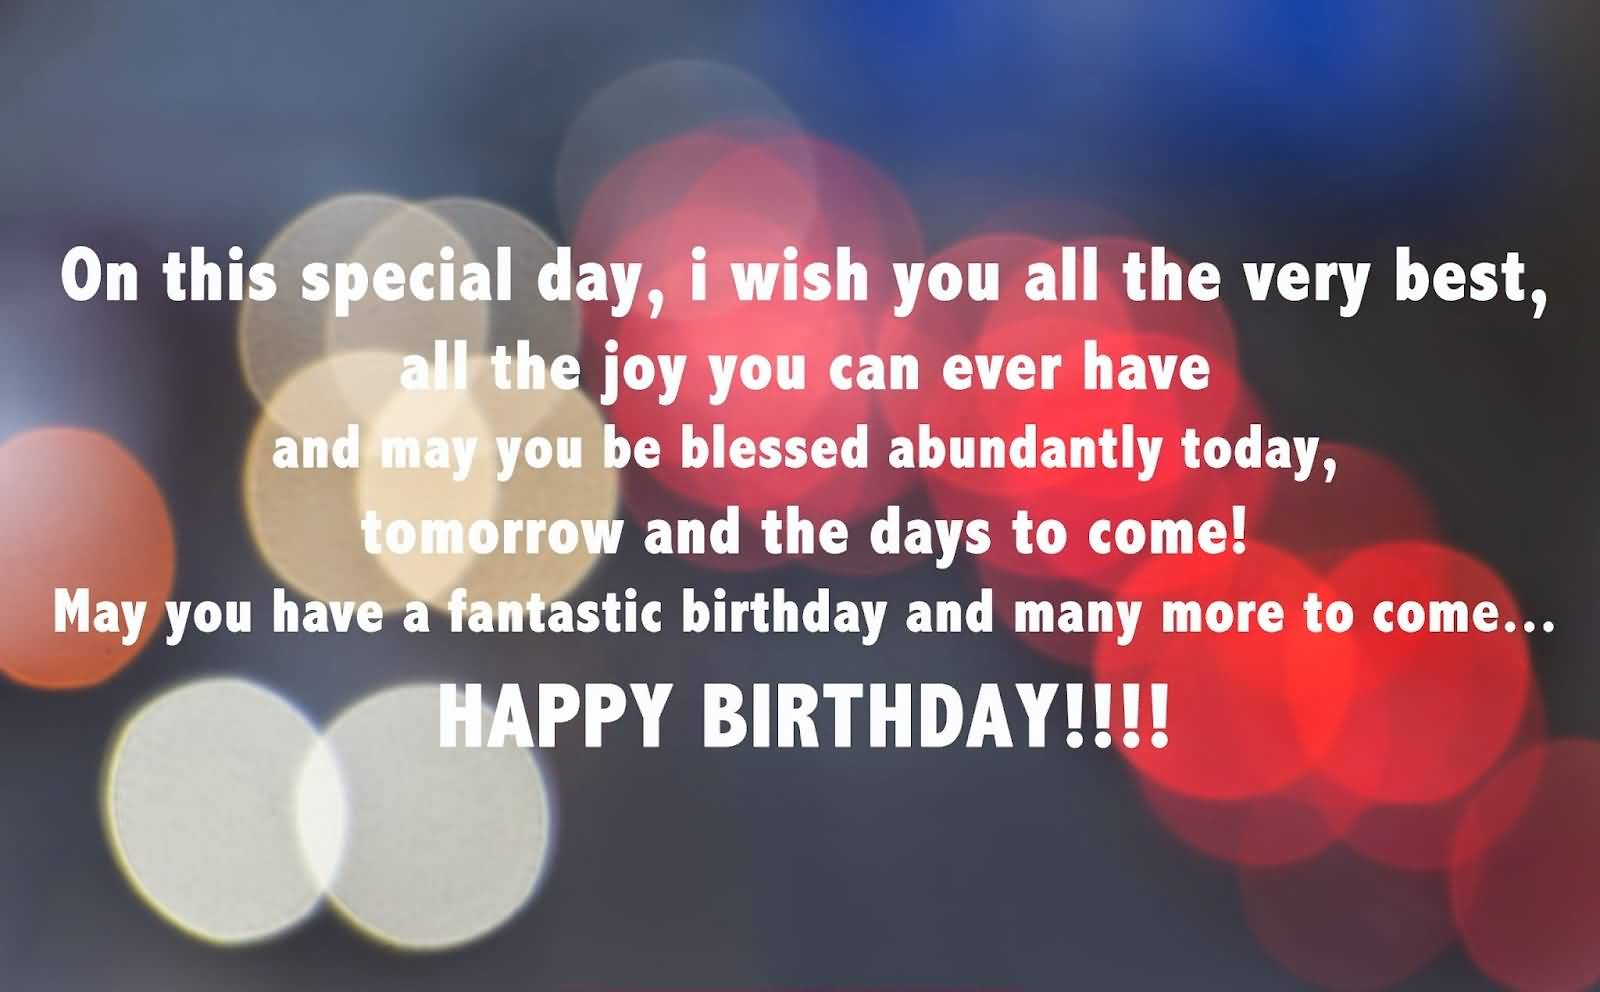 On this special day, I wish you all the Happy Birthday to you dear great blessing wishes image